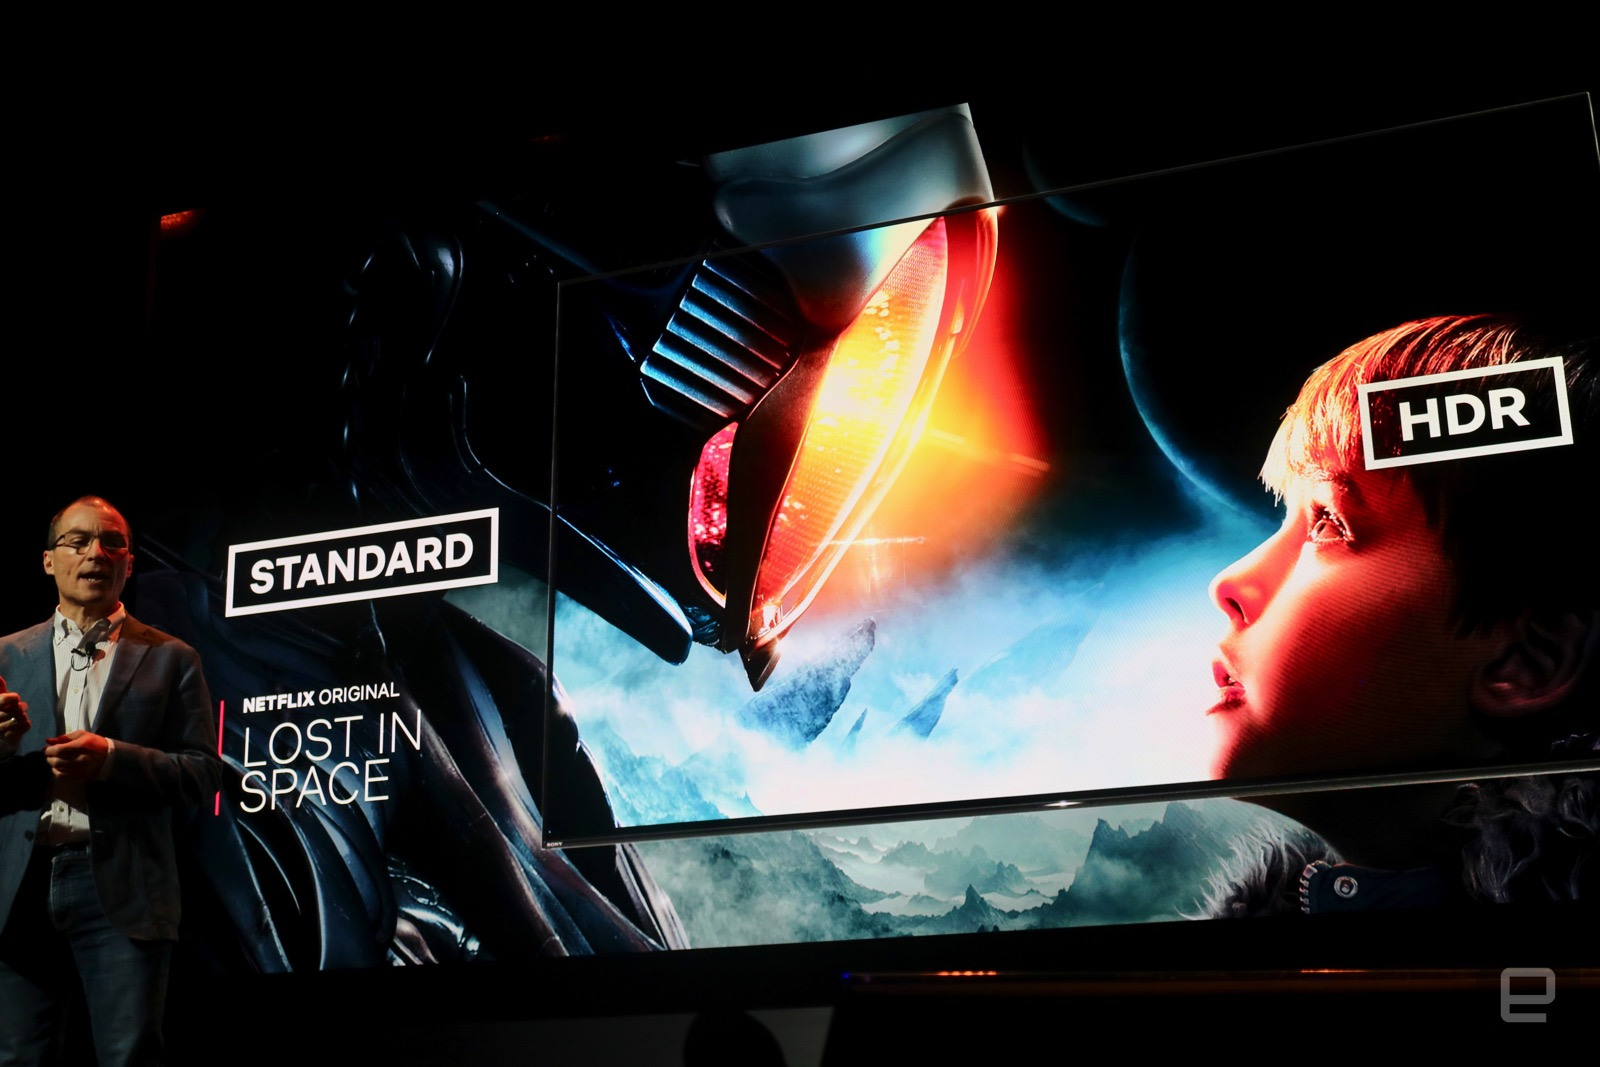 Sony Launches New Master Series 4K HDR TVs; Available Starting September 2018